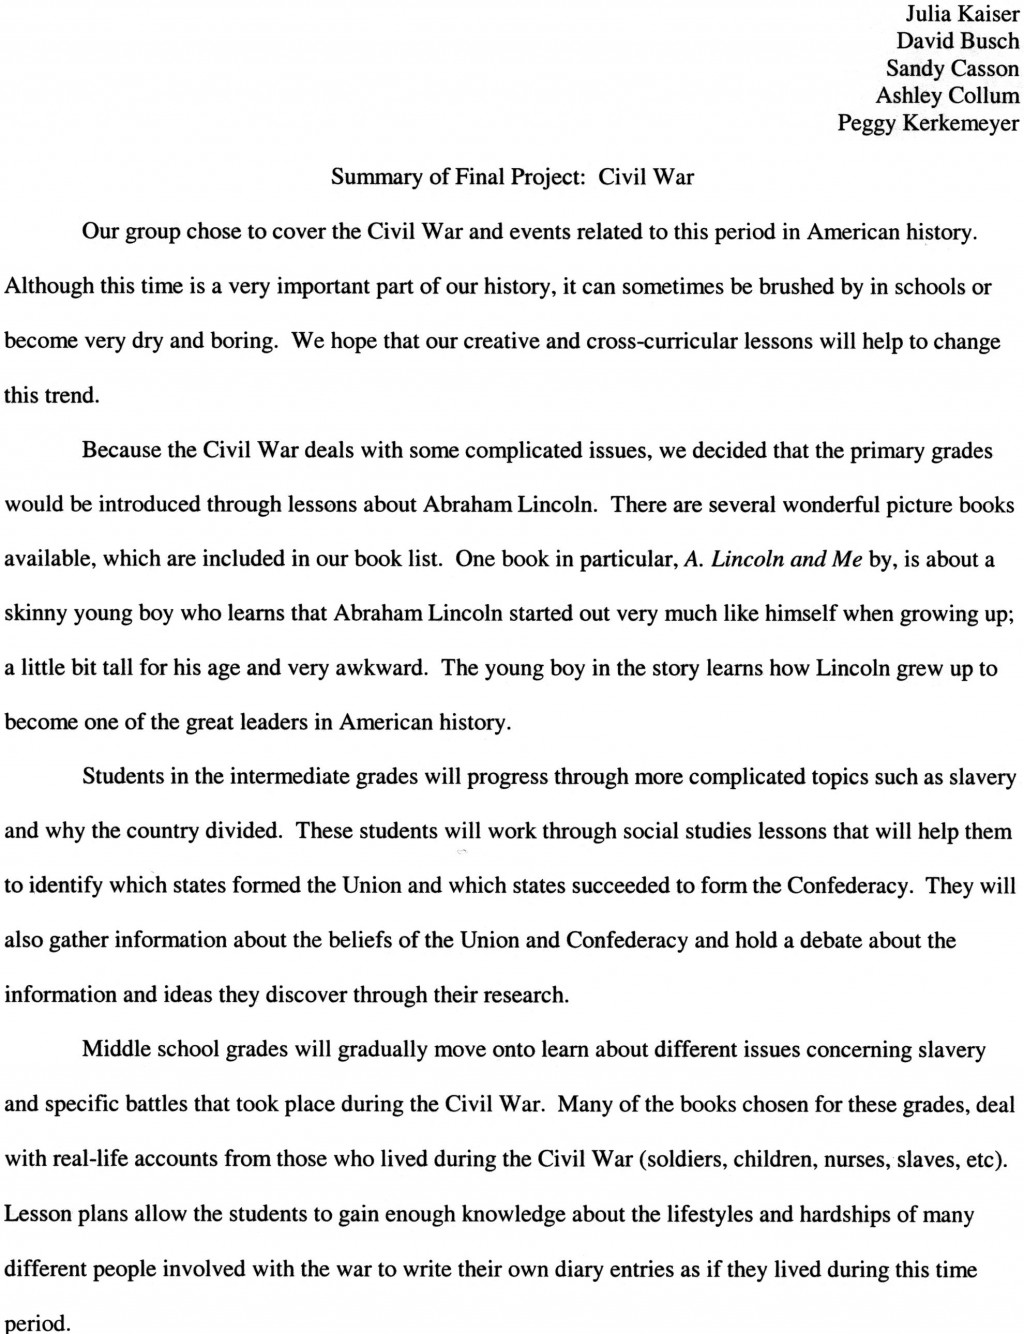 008 Academic Research Paper Essays Civil War Essay Hooks Surprising Large